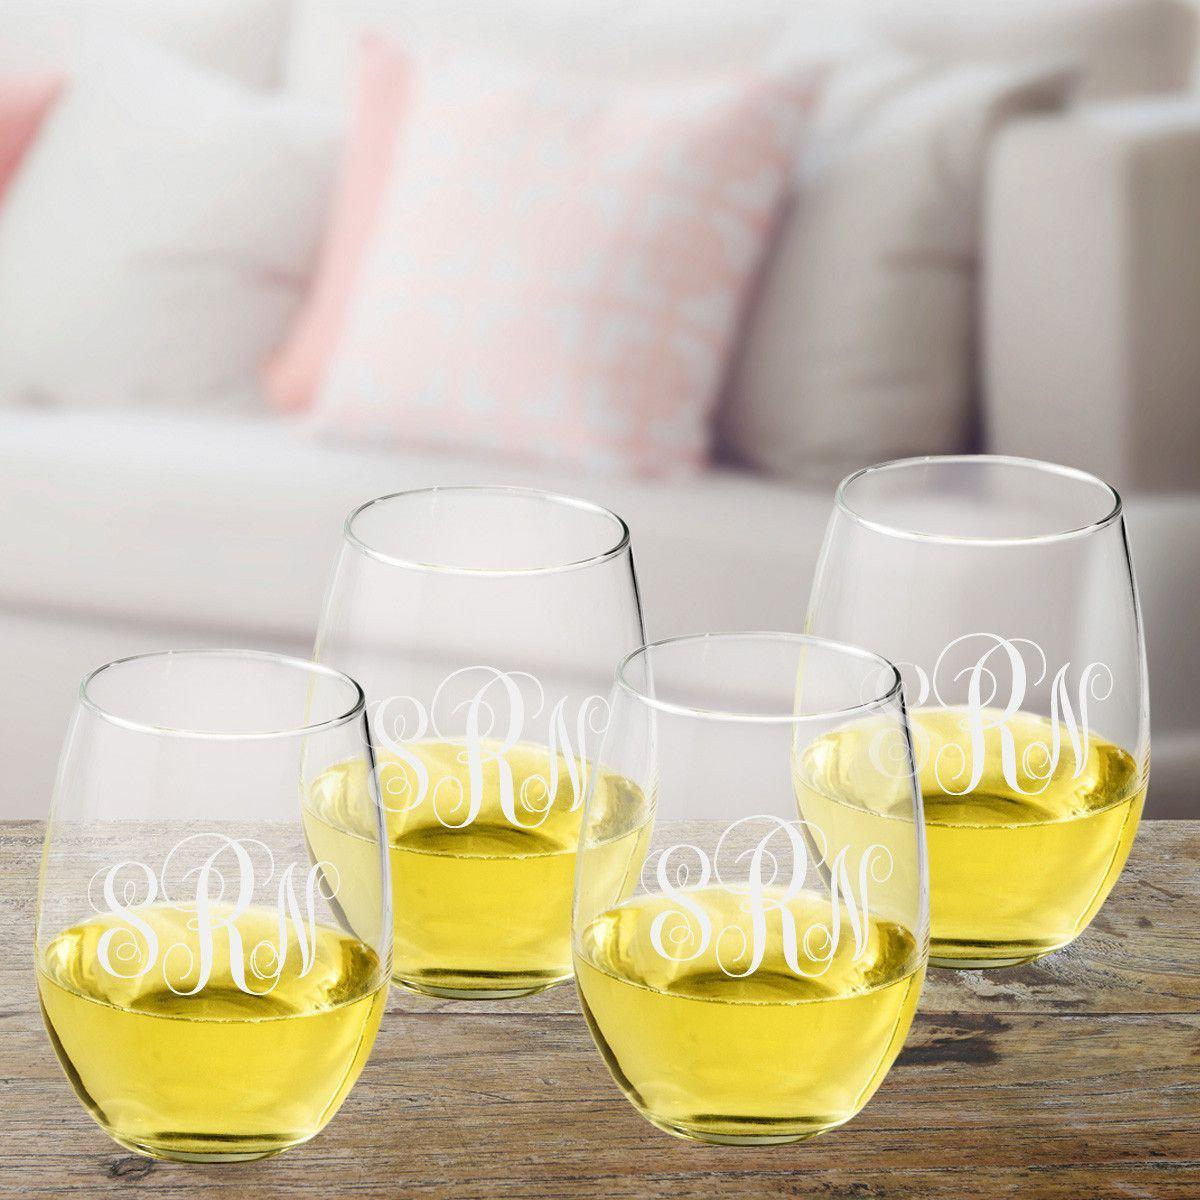 Personalized-Interlocking-Monogram-Stemless-Wine-Glass-Set